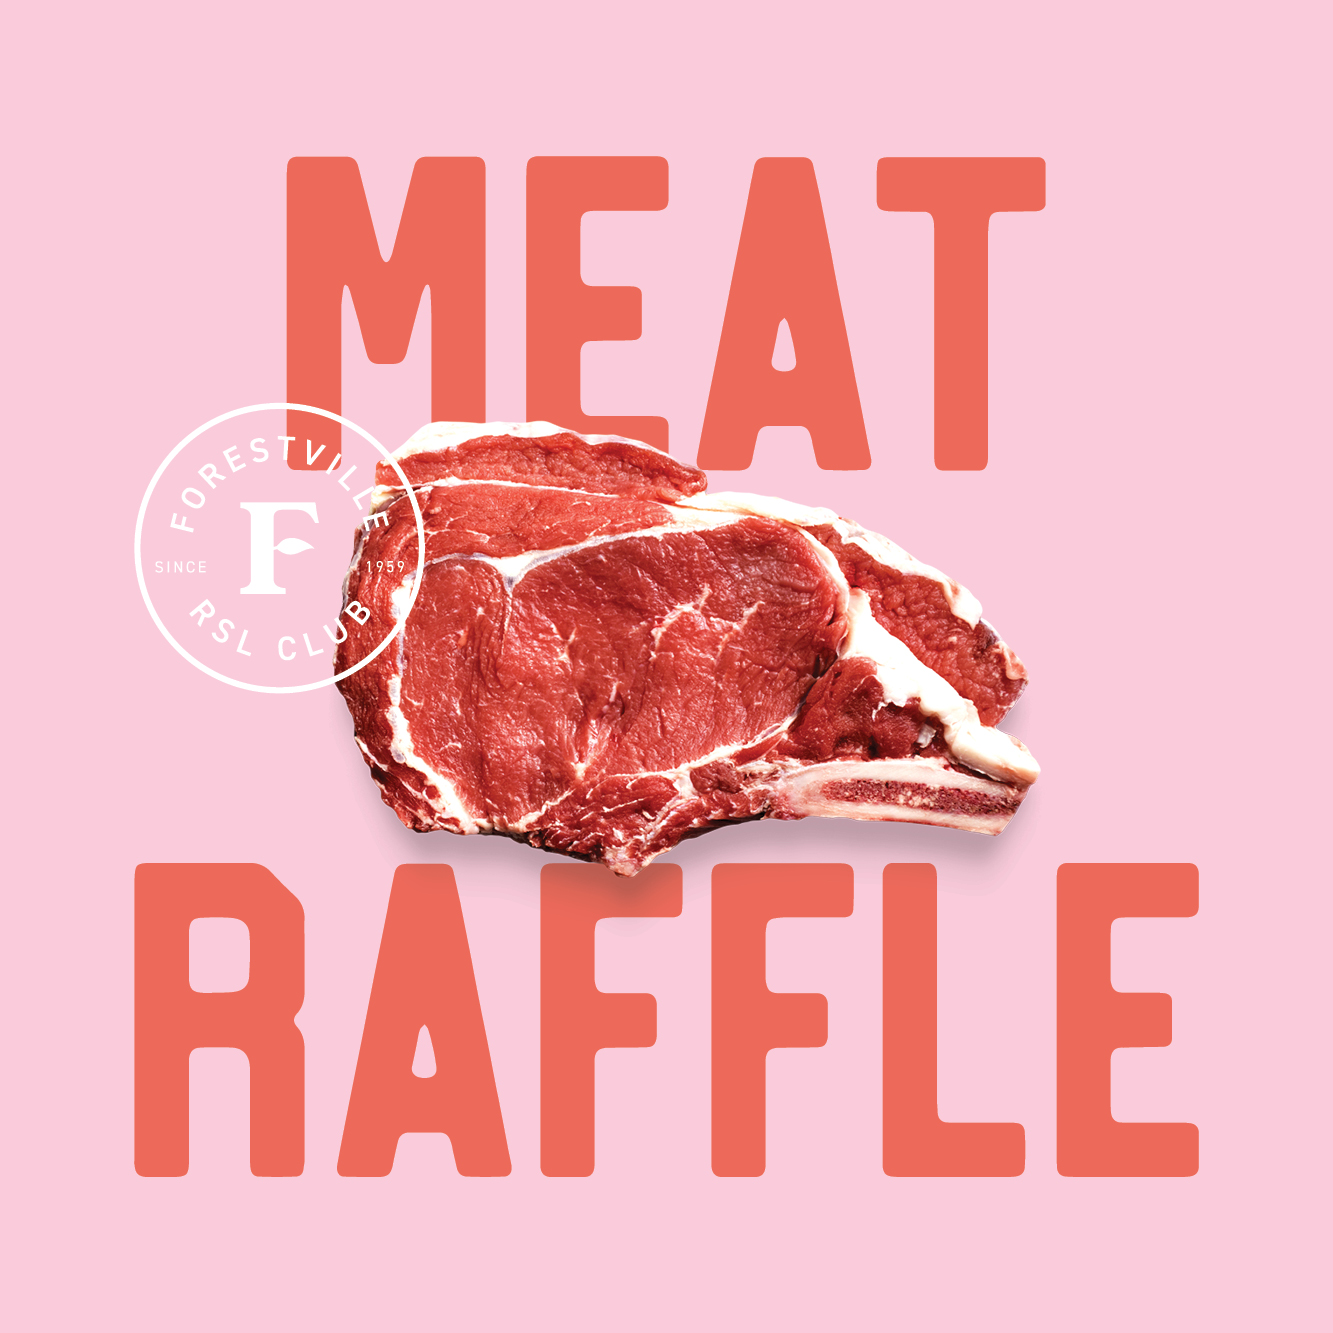 Join us on Fridays for your chance to win a share of meat trays!